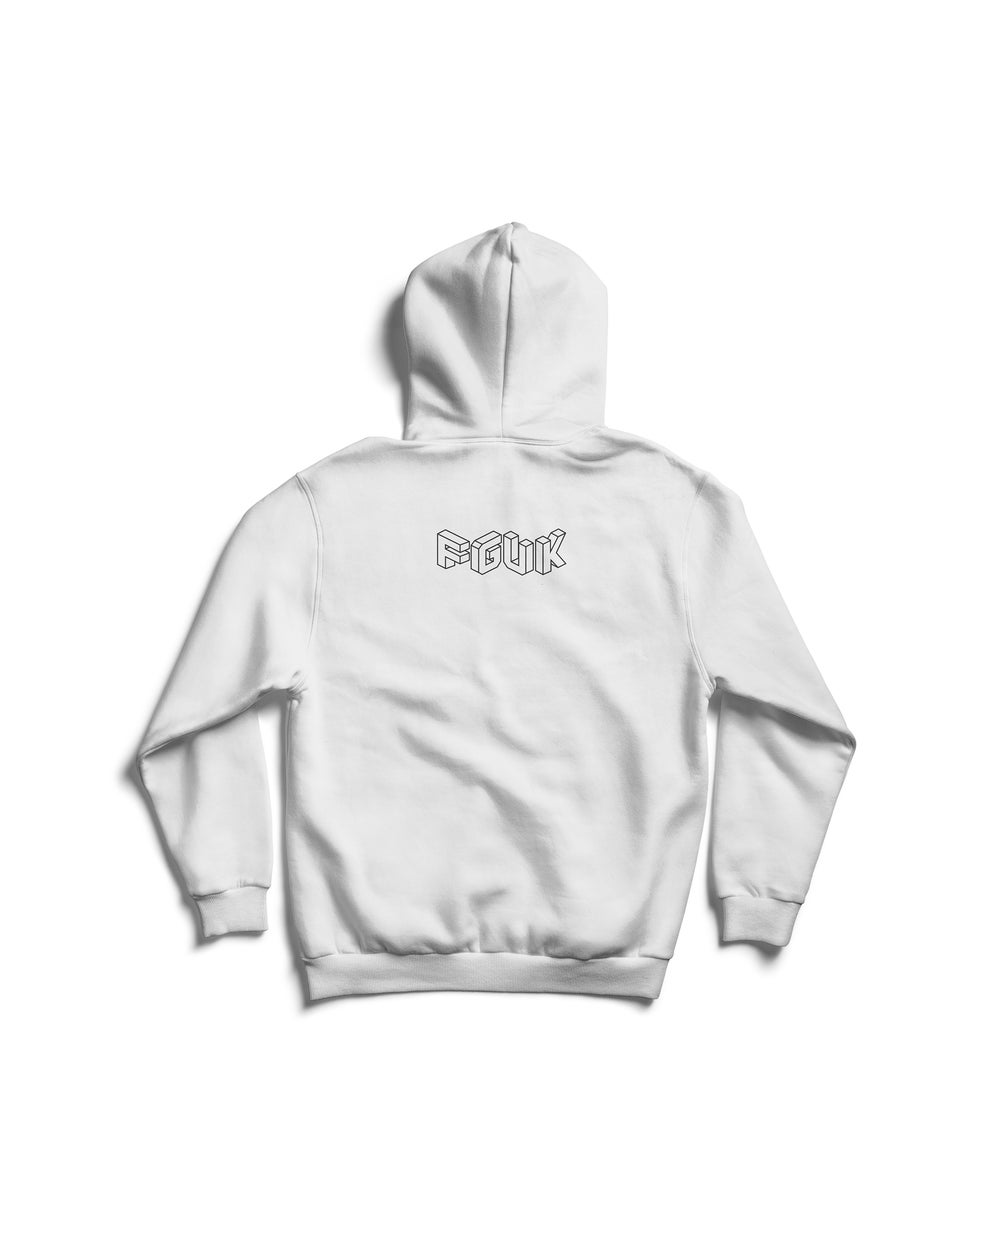 Eat Pussy hoodie 2.0 (White)